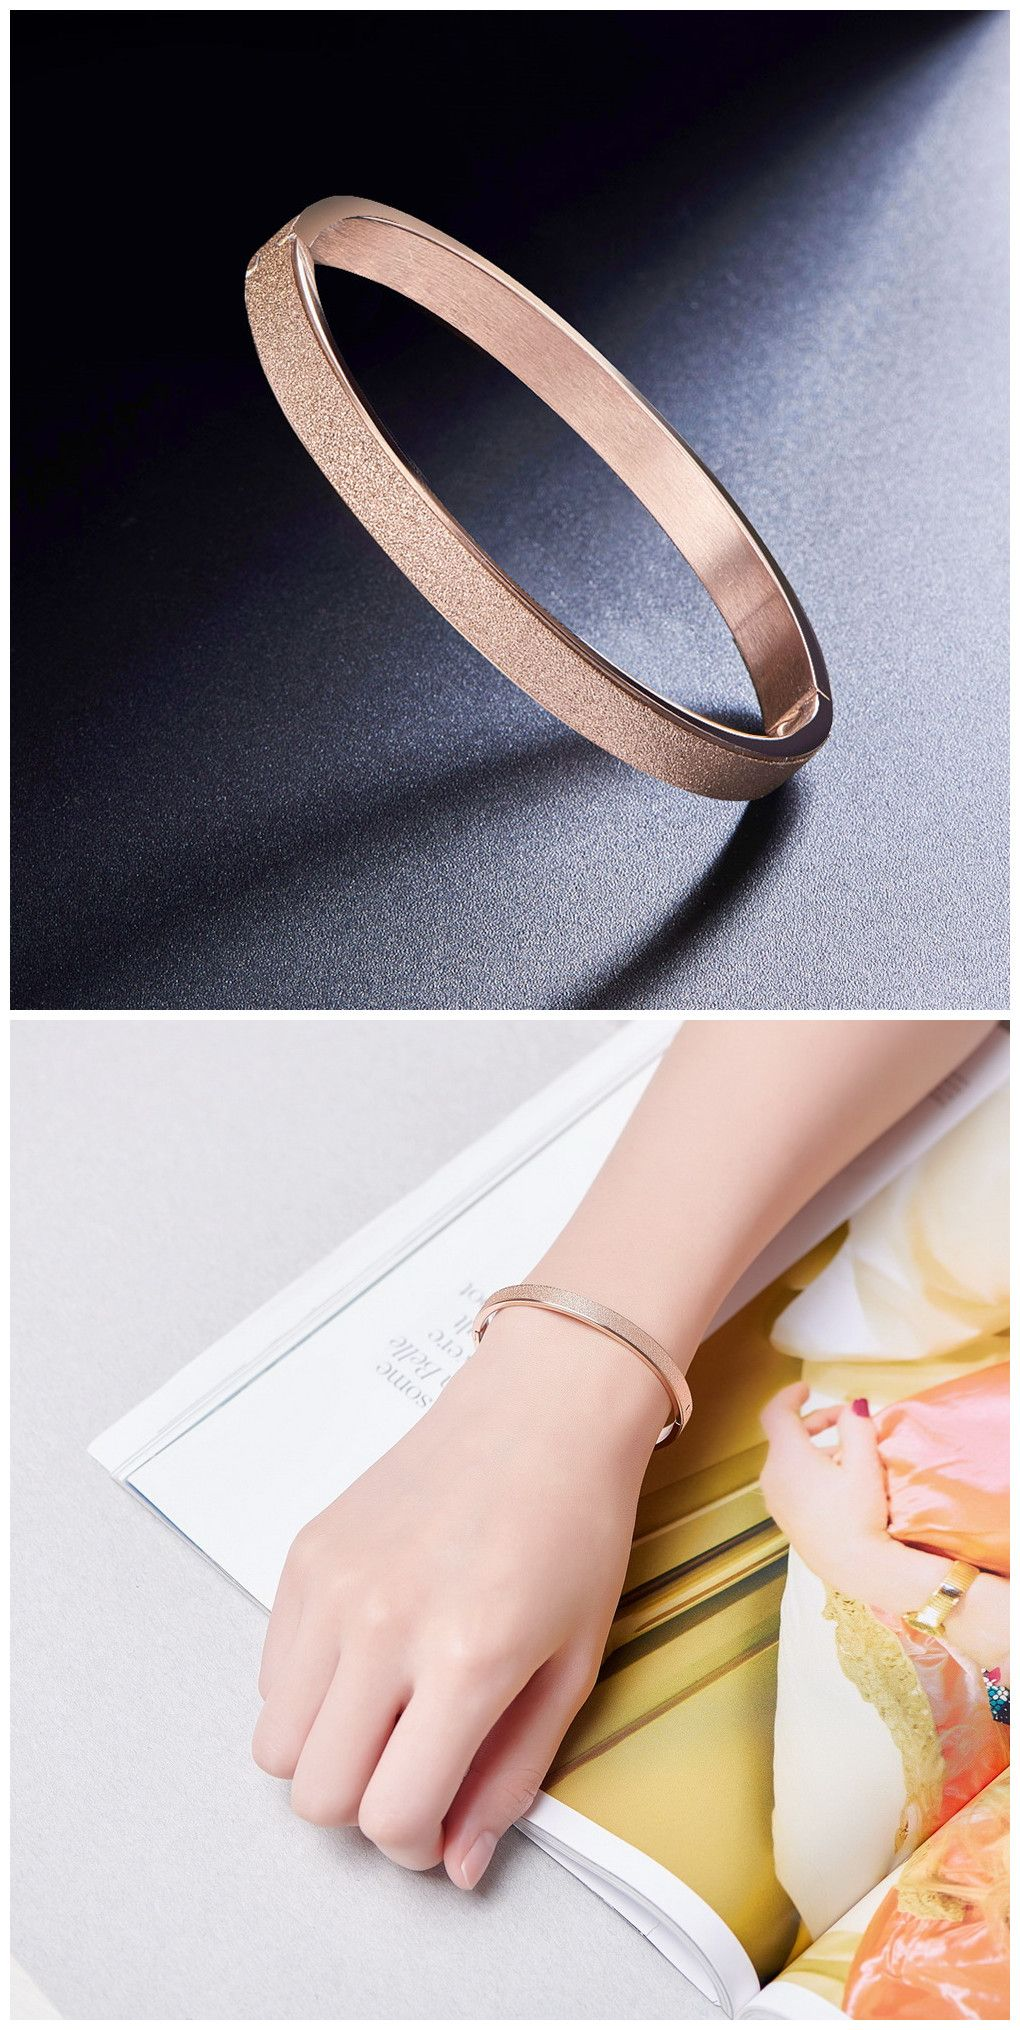 Sweetiee Frosted Titanium Steel Bangle Rose Gold 185mm for Woman VAy6CTuK